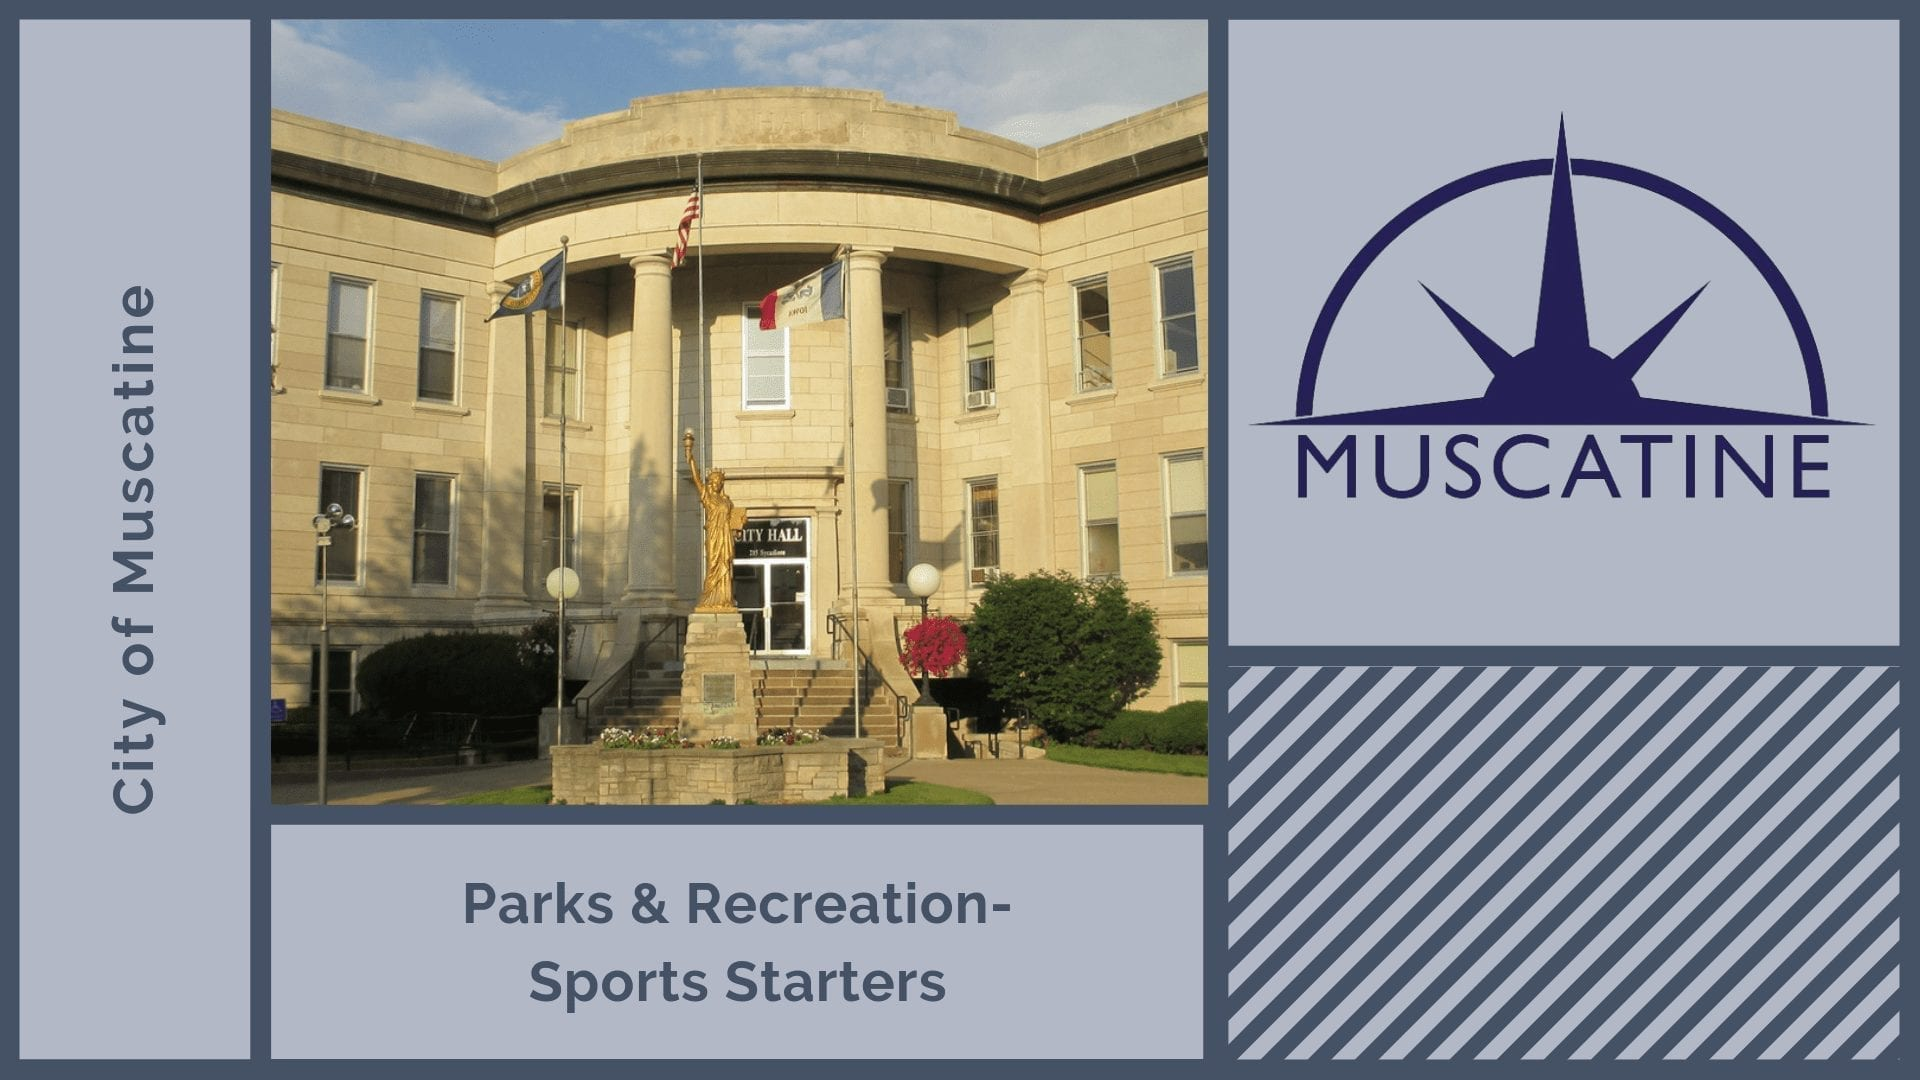 Parks & Recreation- Sports Starters